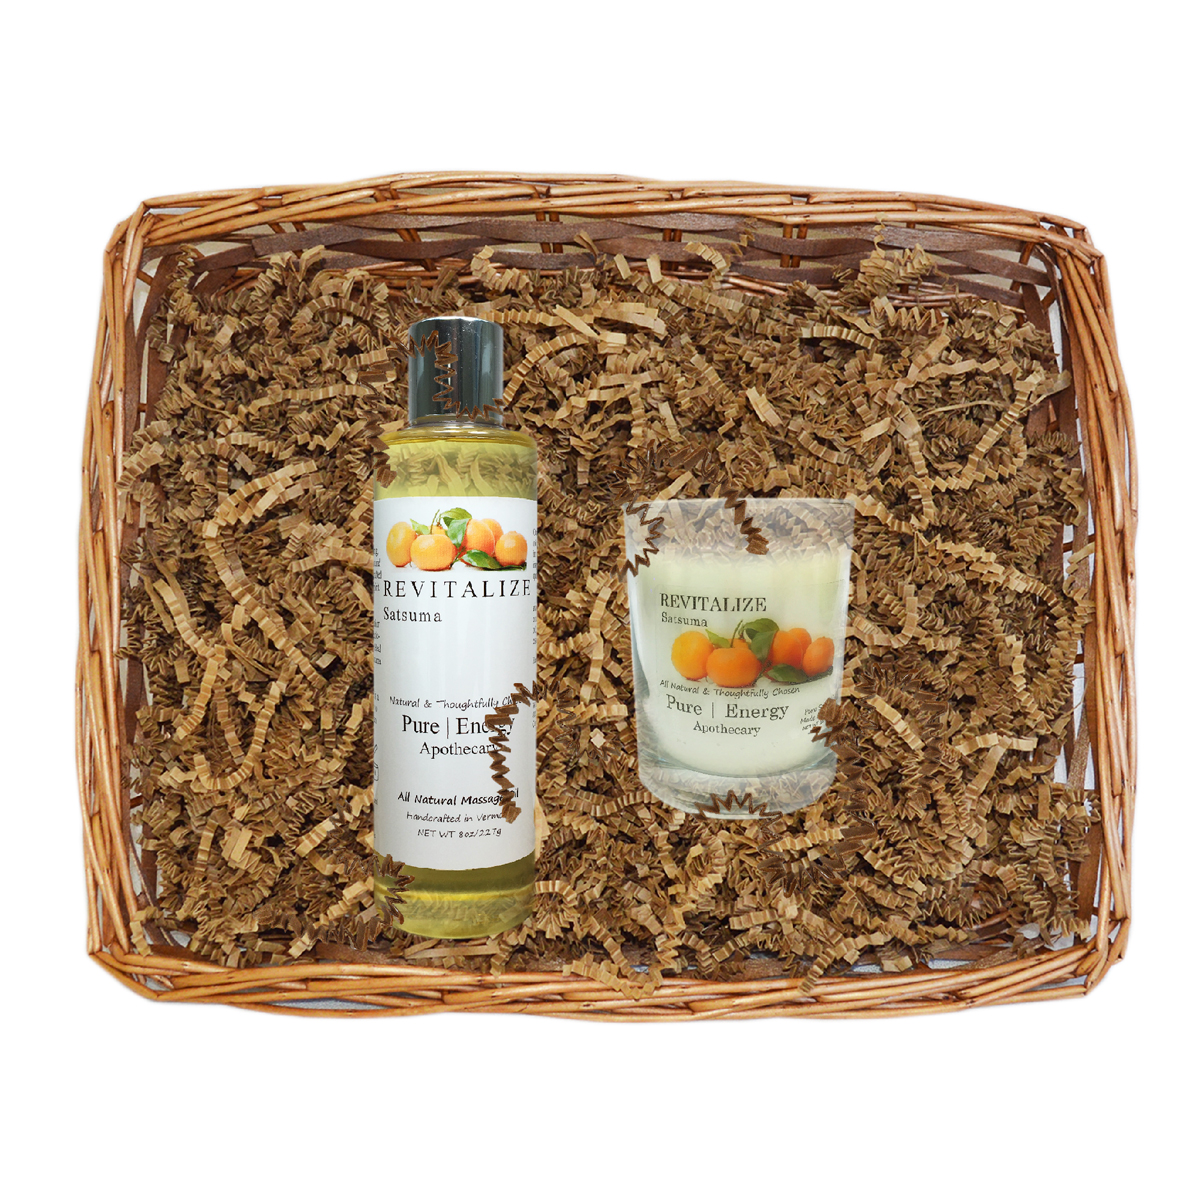 Pure|Energy Apothecary : Relaxing Ritual Gift Set # 4 Satsuma with Basket